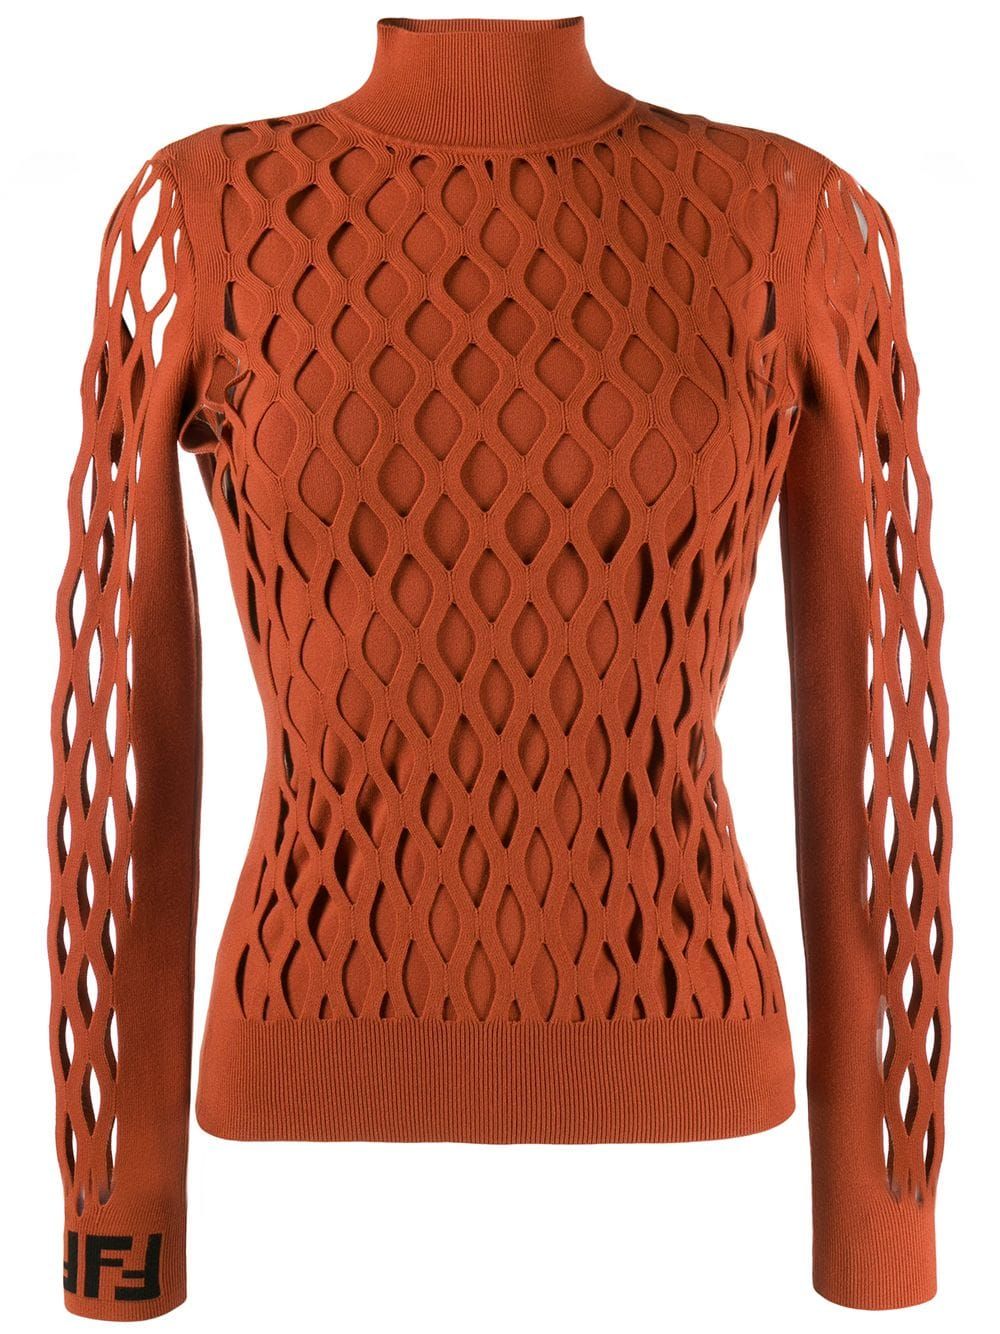 Autumn colors 2019, clay, clay sweater, Fendi mesh effect sweater